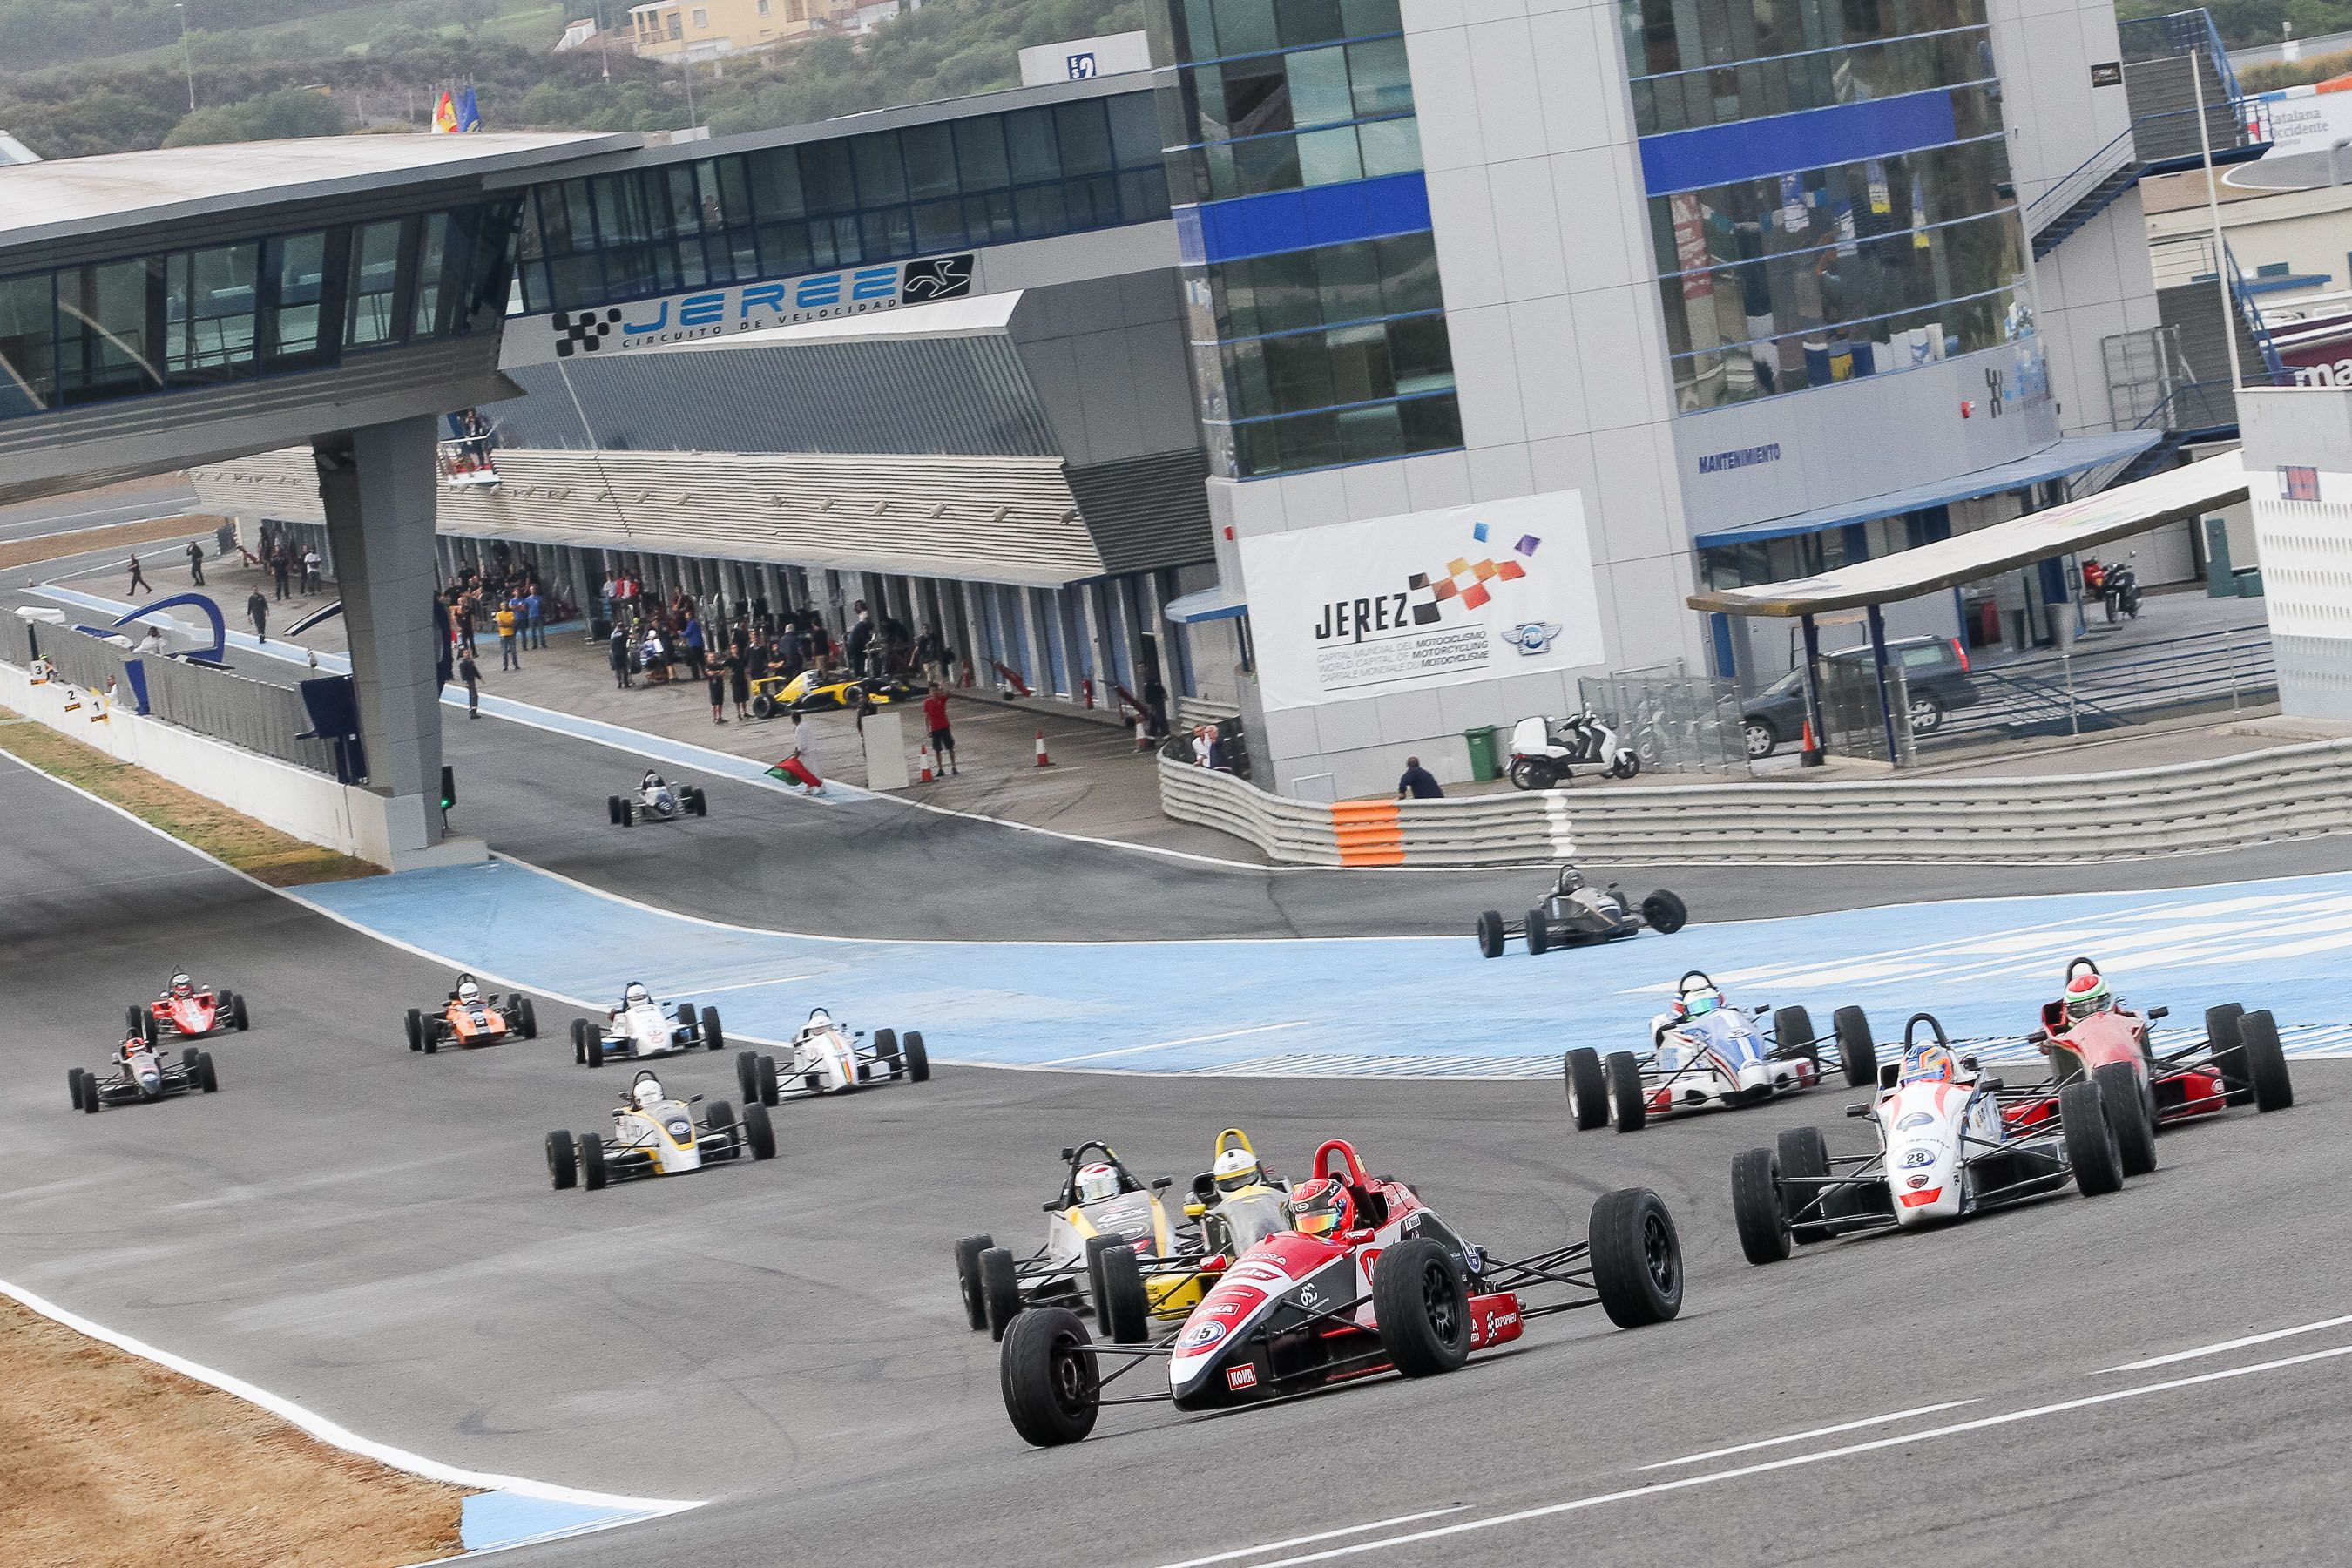 Salida de la prueba de Single Seater Series